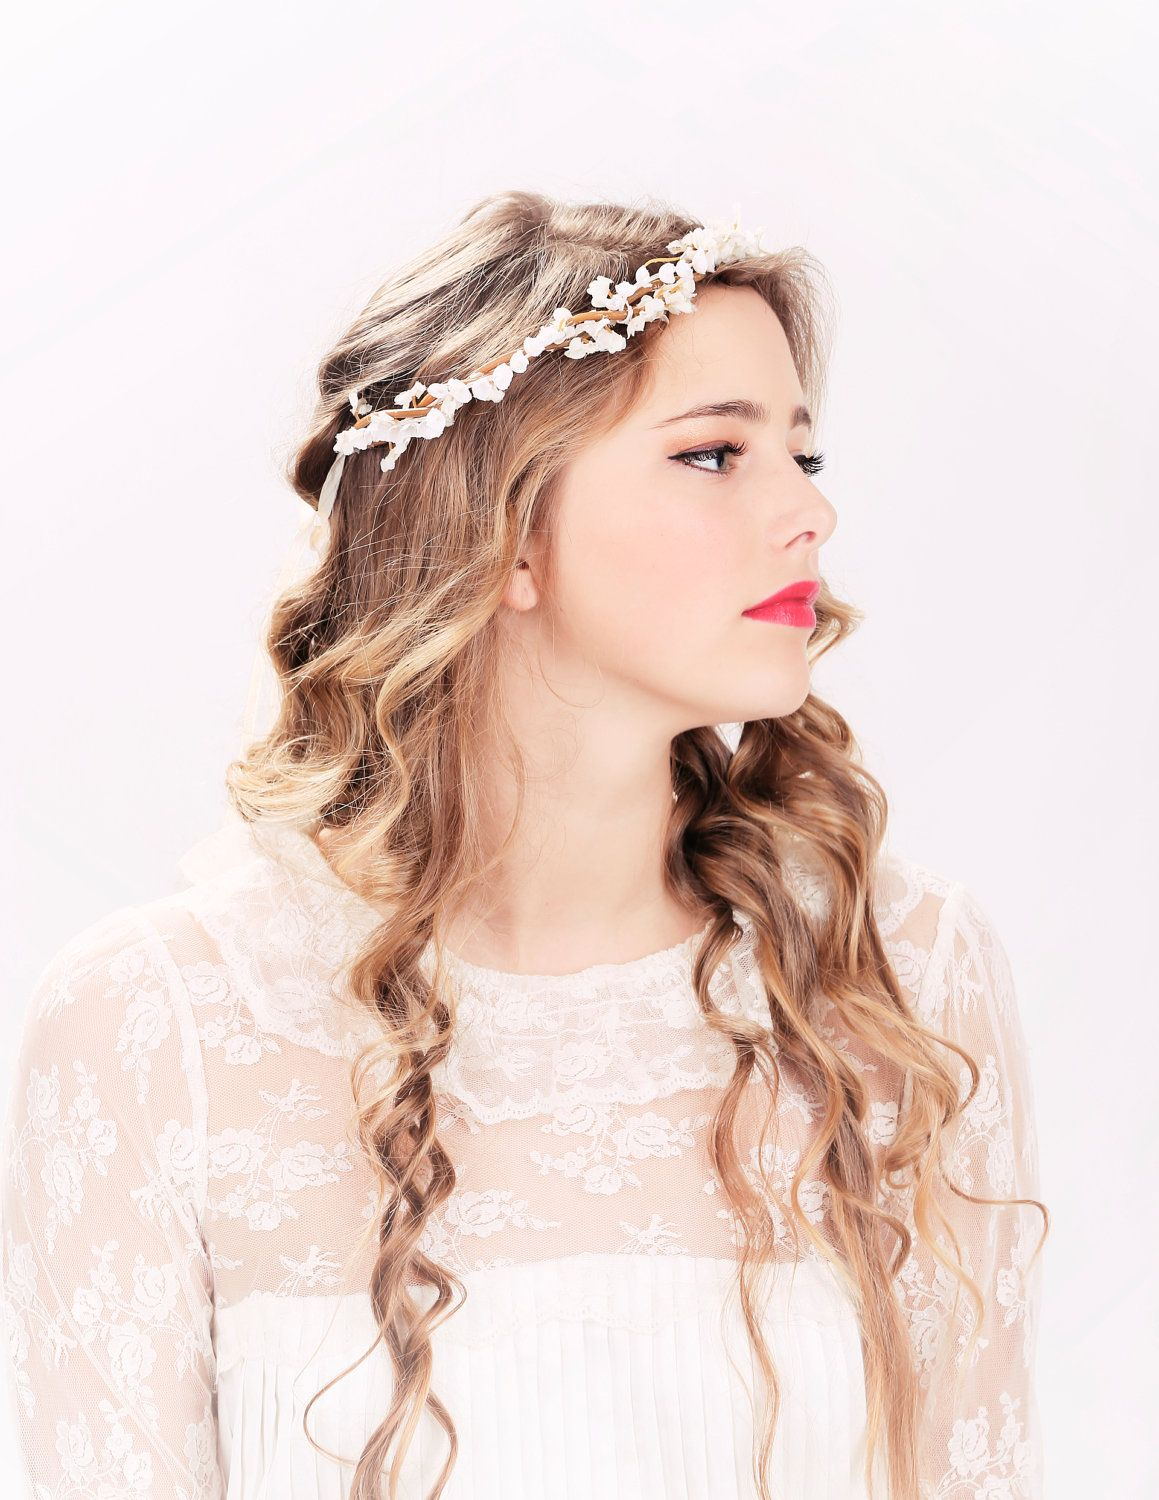 Bridal headband flower crown headpiece wedding headband bridal bridal headband flower crown headpiece wedding headband bridal headpiece flower headpiece wedding headpiece dhlflorist Images